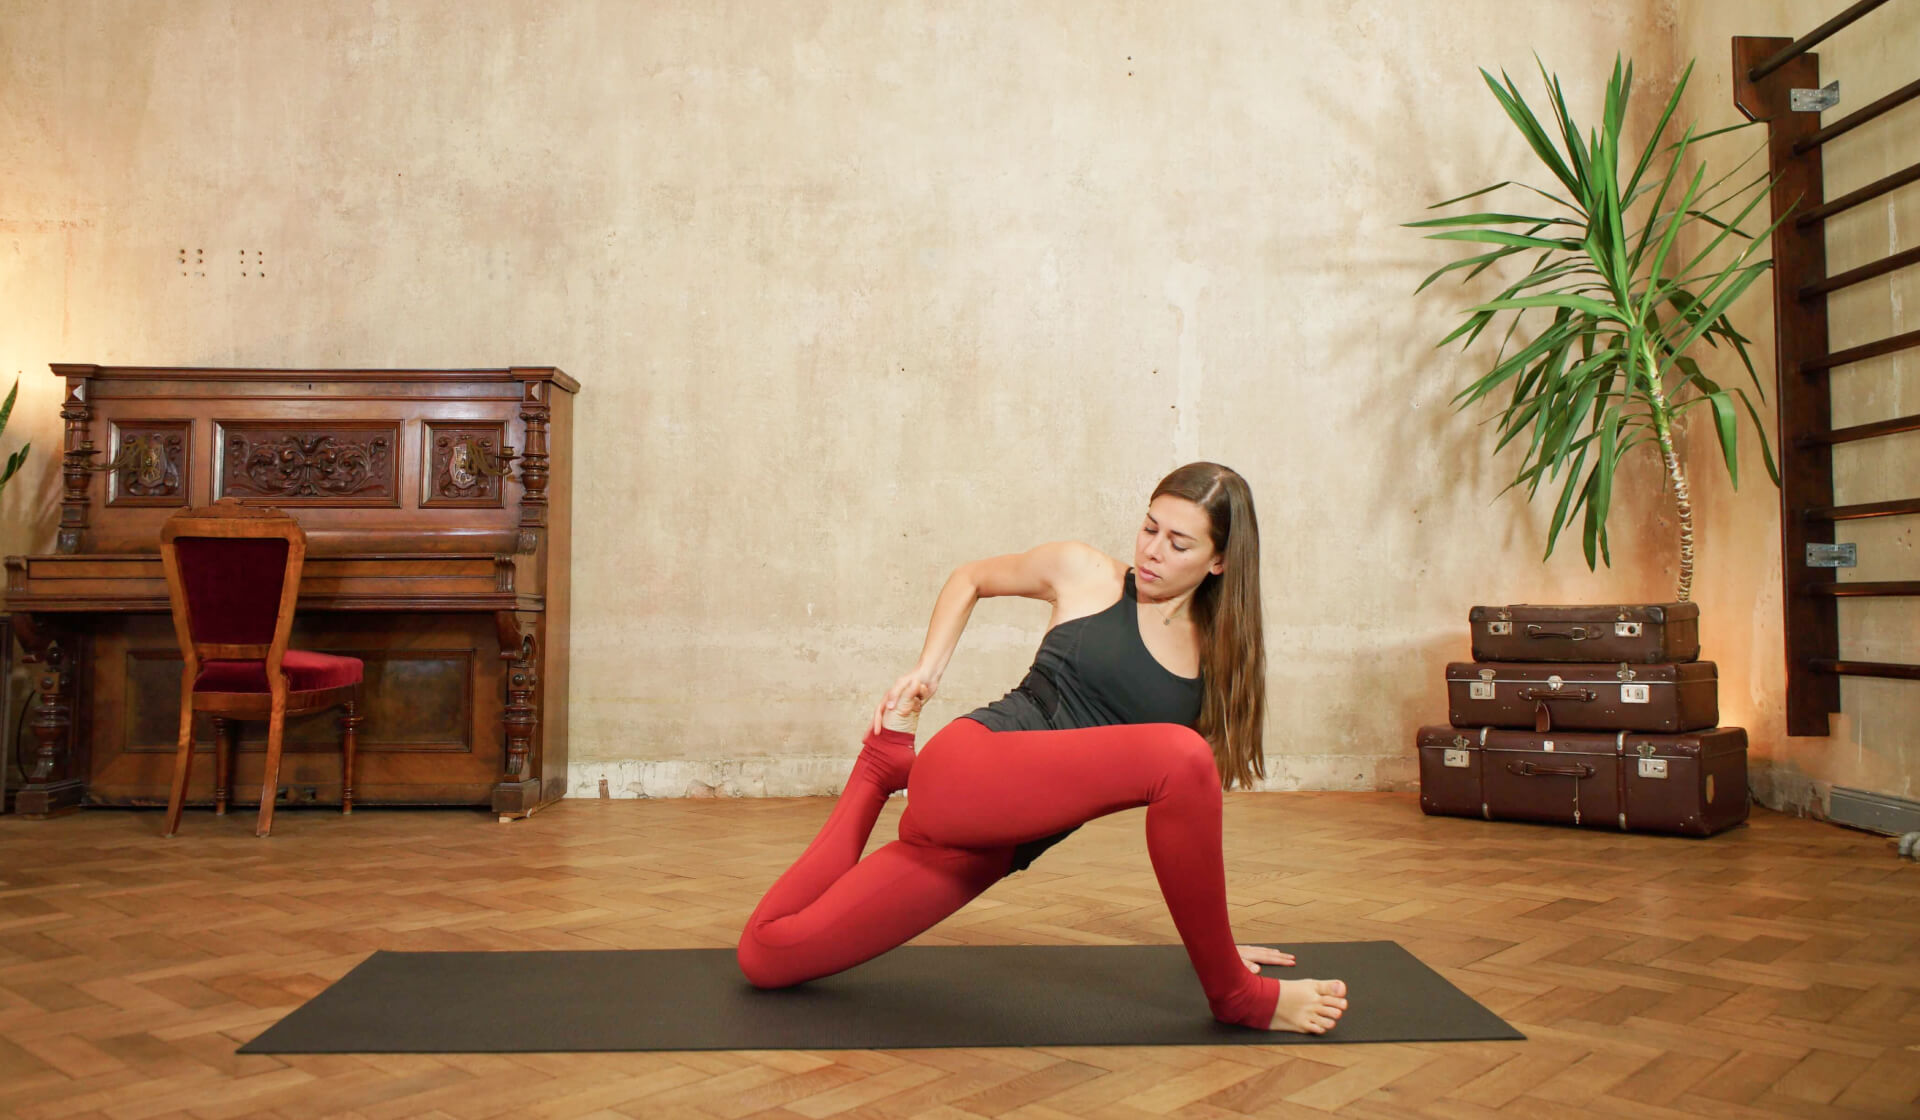 Yoga teacher in black tank top and red yoga pants twisting in a lunge and stretching her quads on a black yoga mat in front of a piano, beige wall, stack of suitcases, and green palm tree